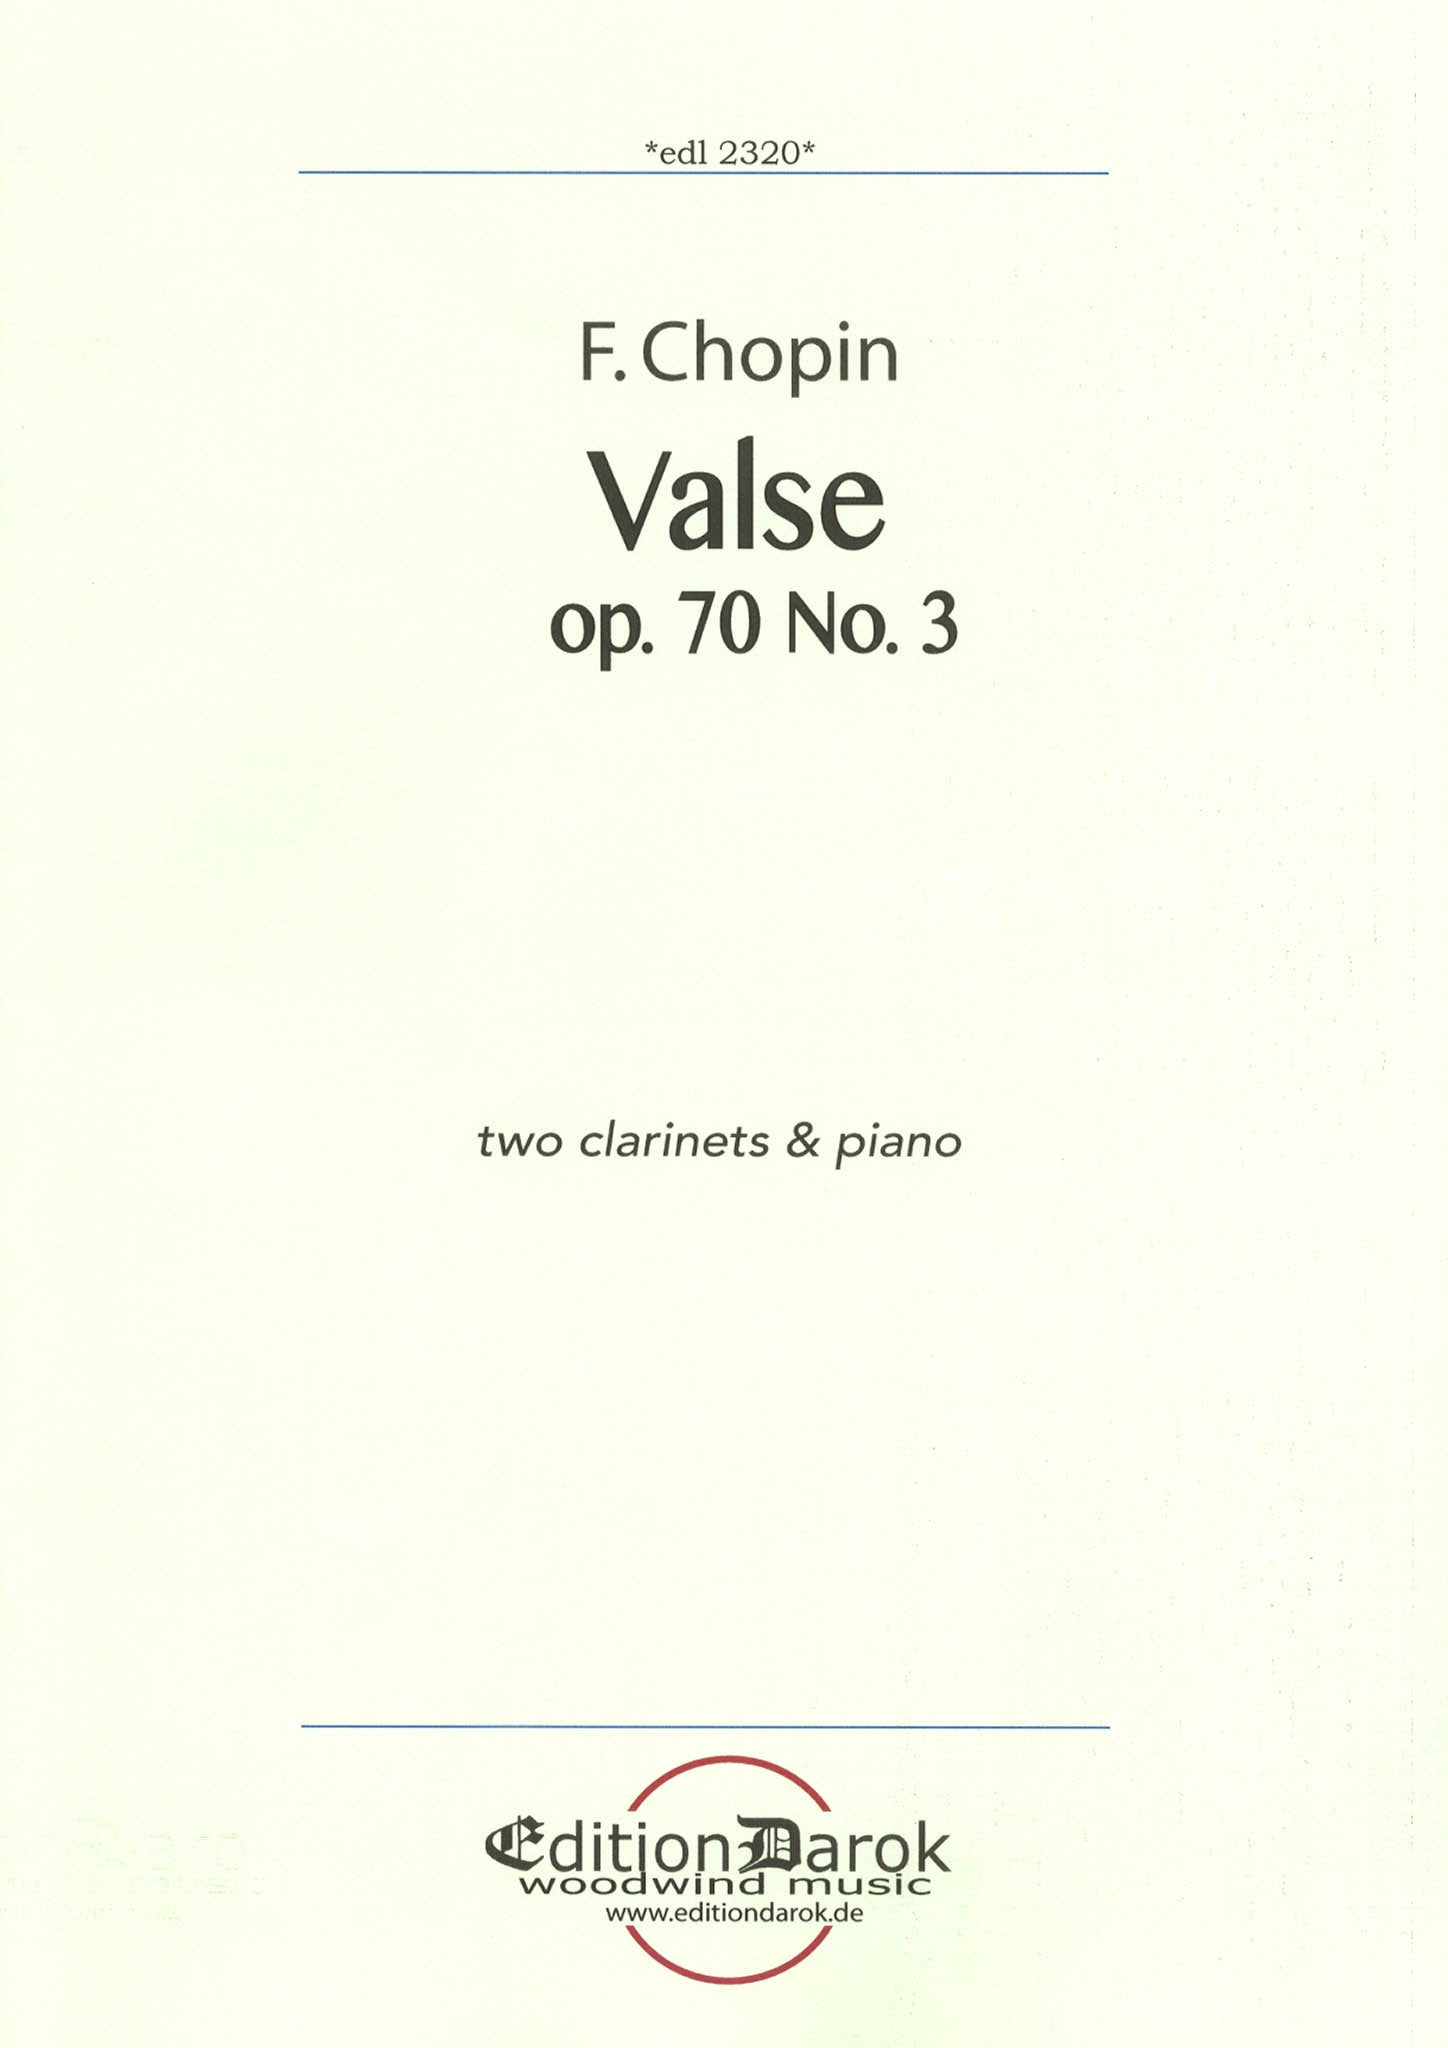 Chopin Waltz, Op. 70 No. 3 for 2 clarinets & piano Cover